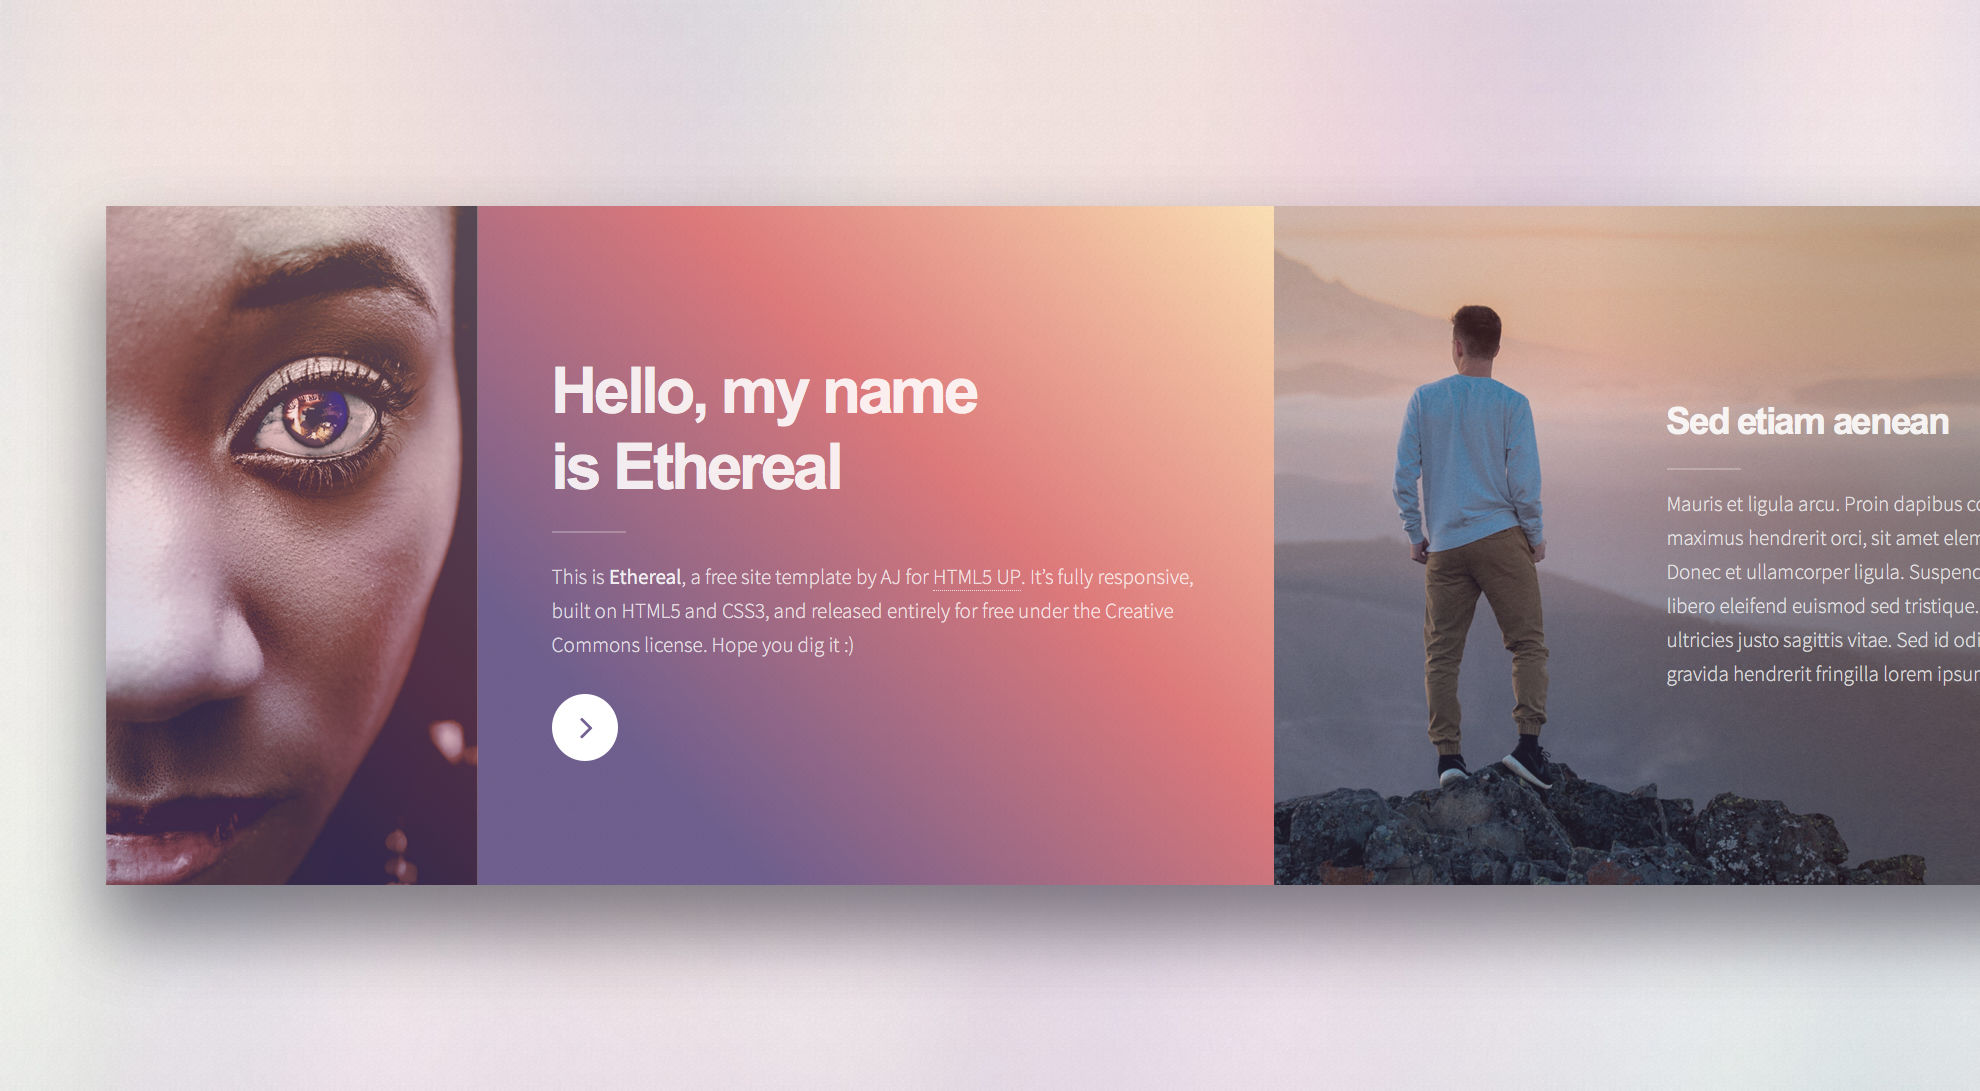 Ethereal is a free responsive side-scrolling HTML5 website template using custom HTML framework. The speciality of this template is the side-scrolling framework with various